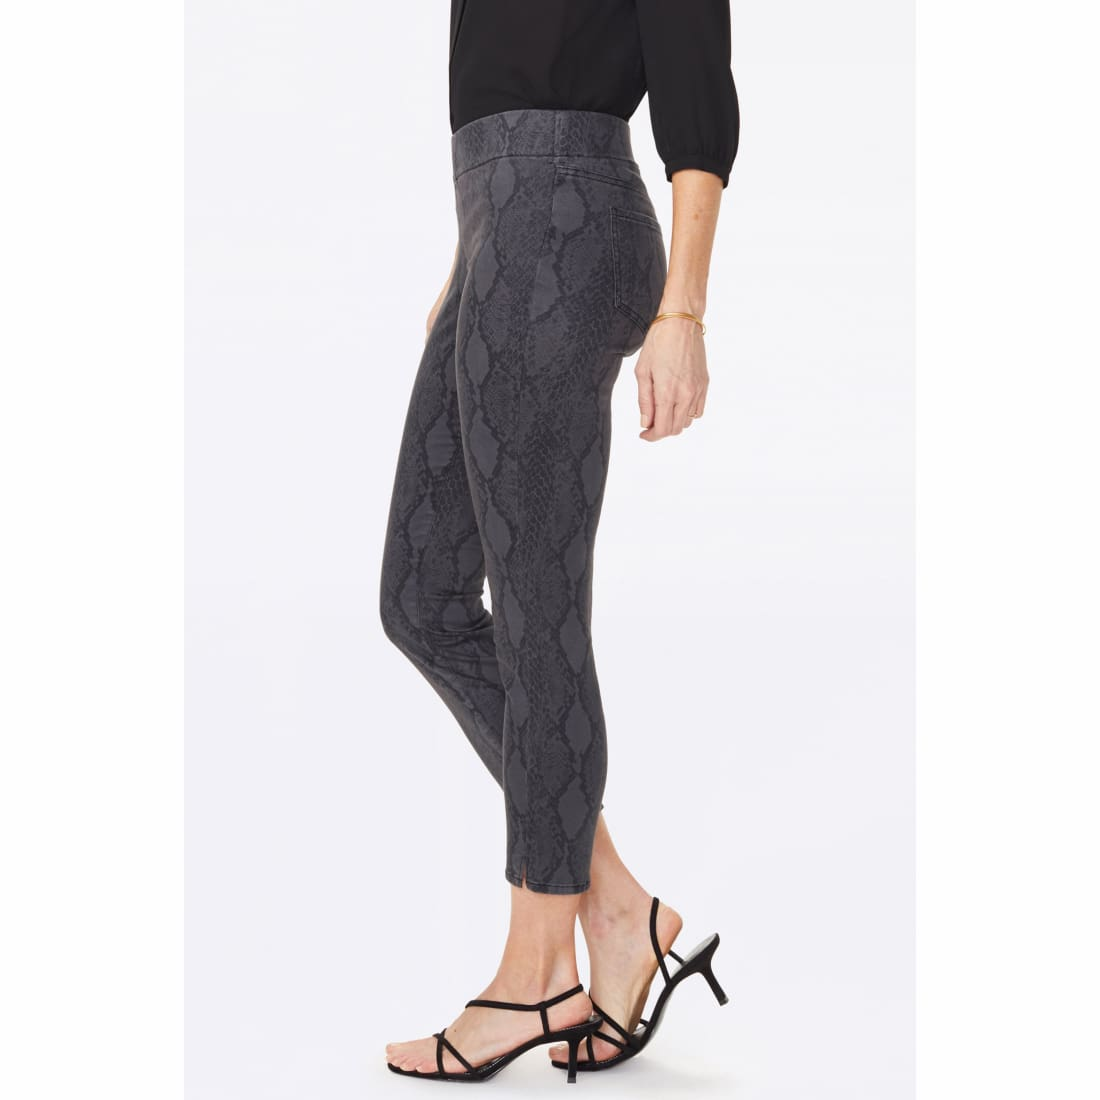 Nydj Womens Skinny Ankle Pull-On Jeans With Slit Diamond Back Print Jeans